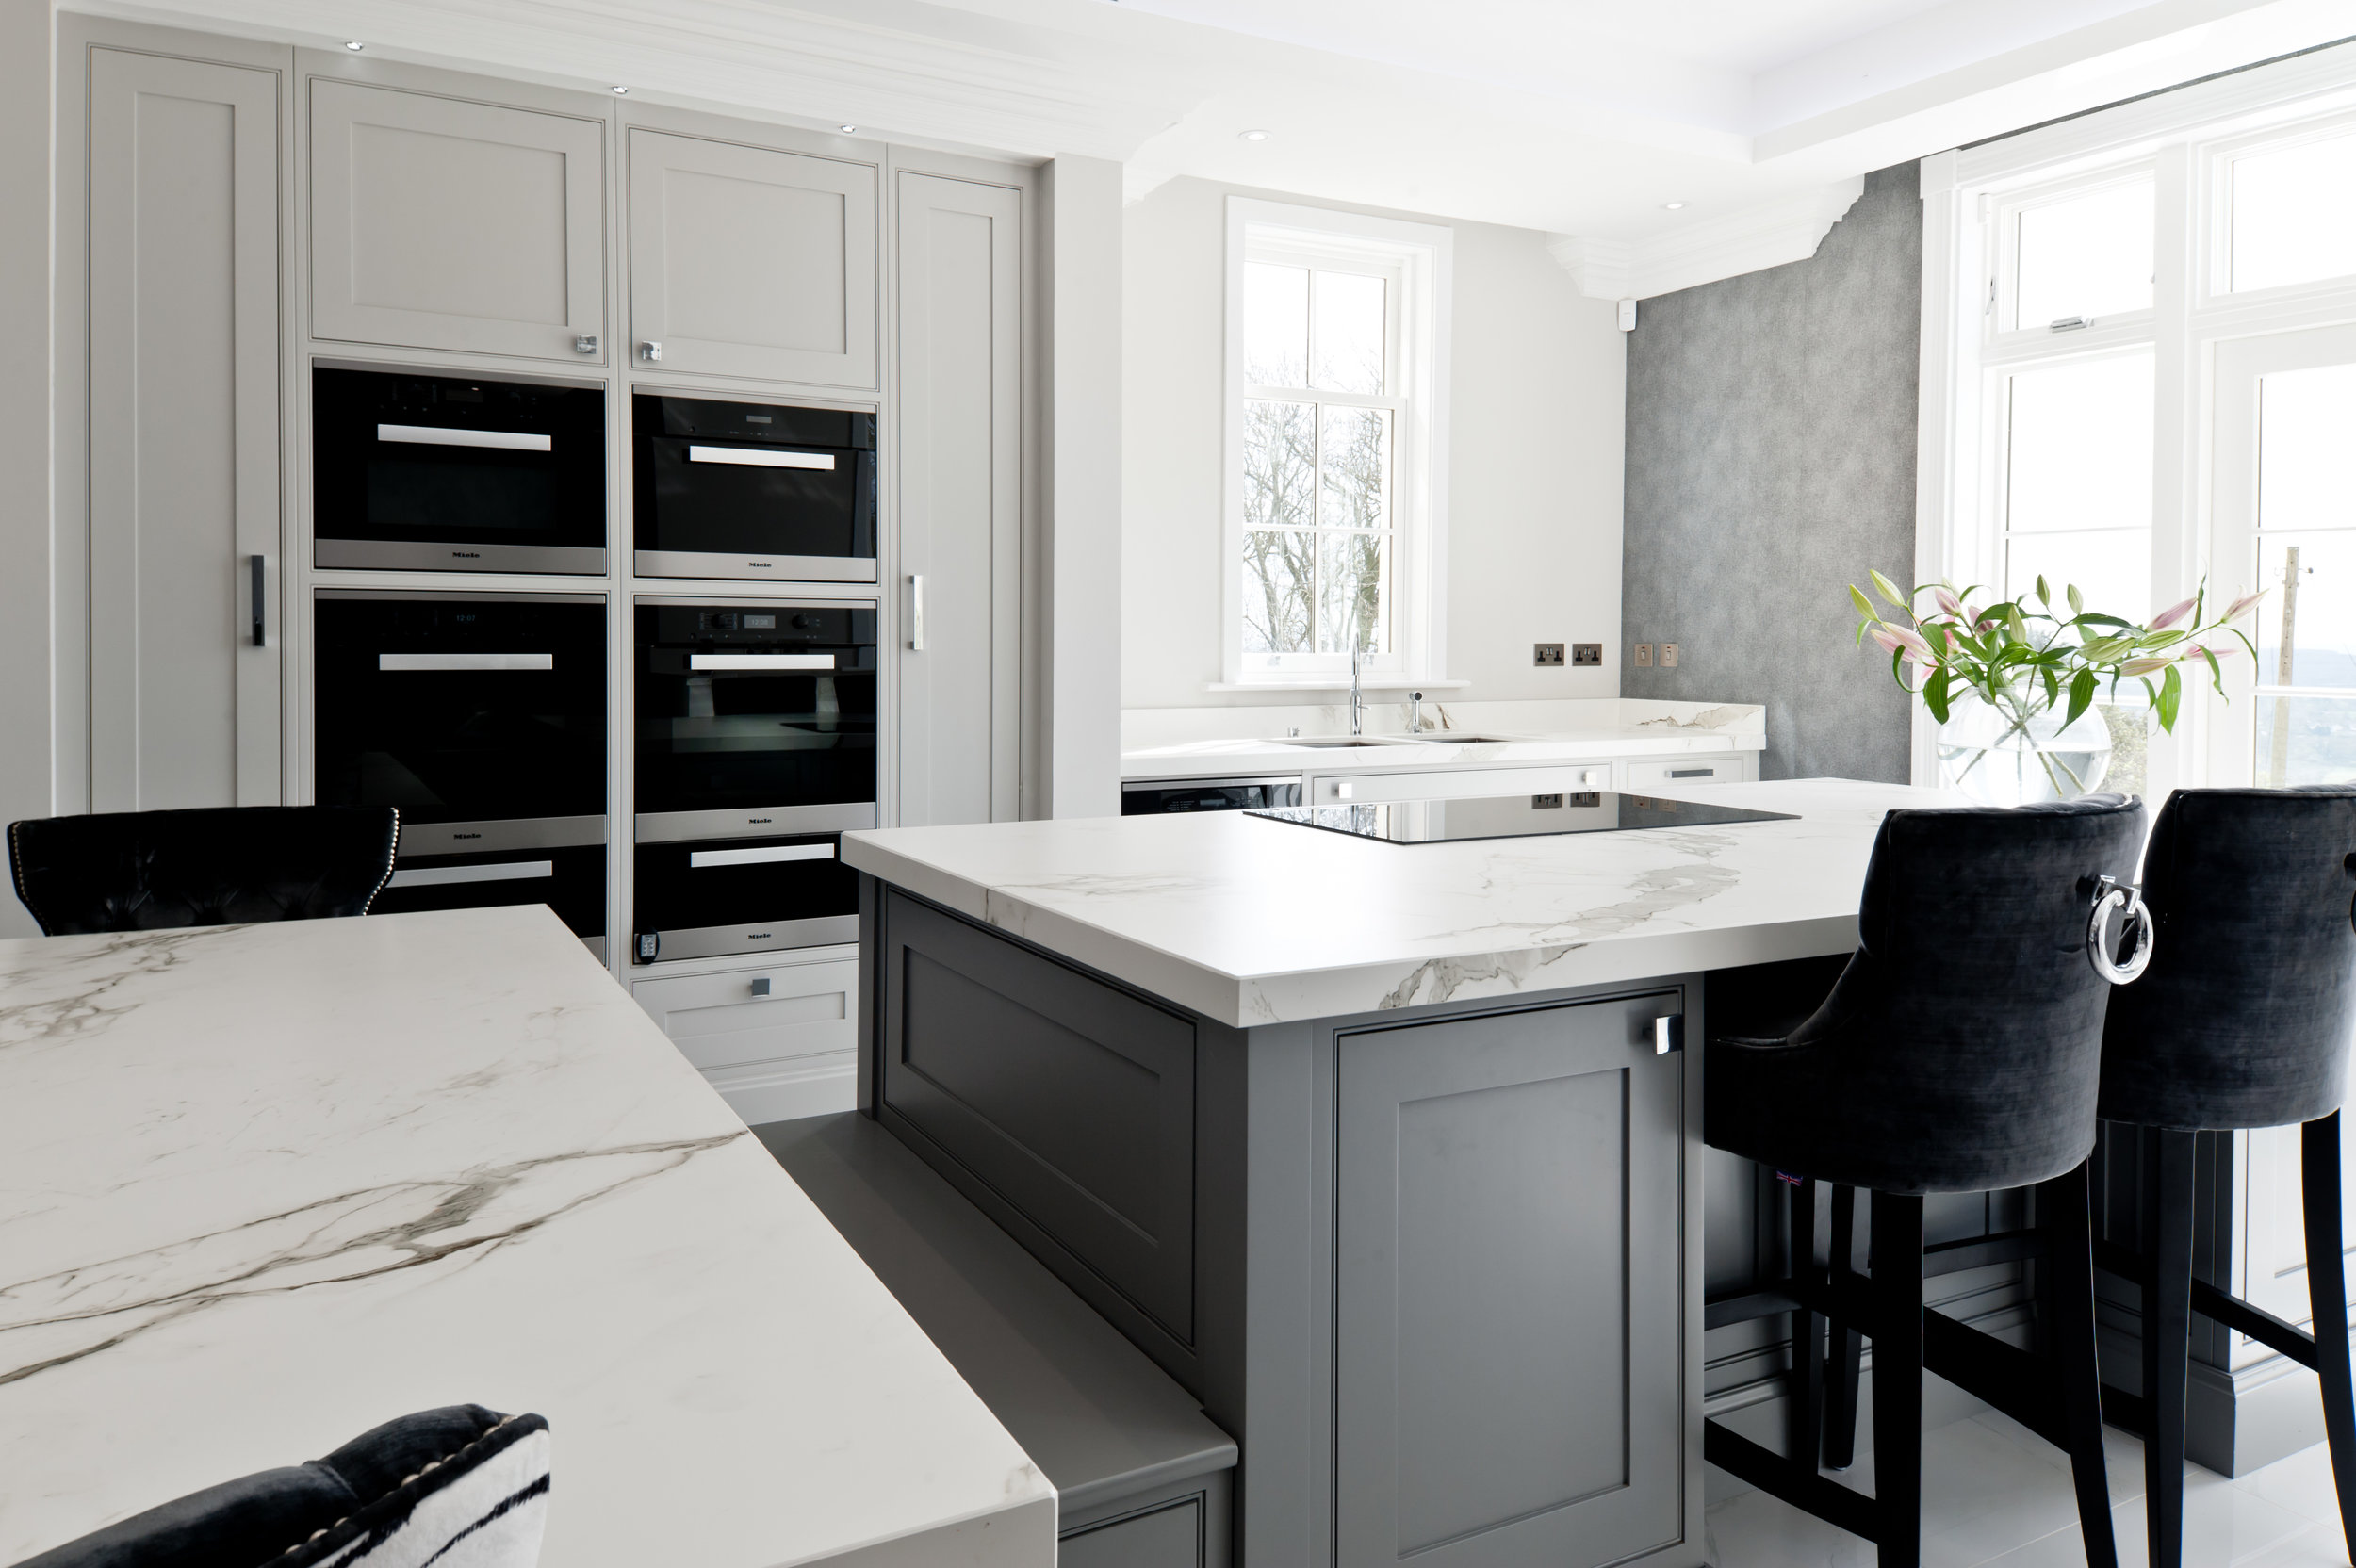 fairseat lane kitchen - dekton